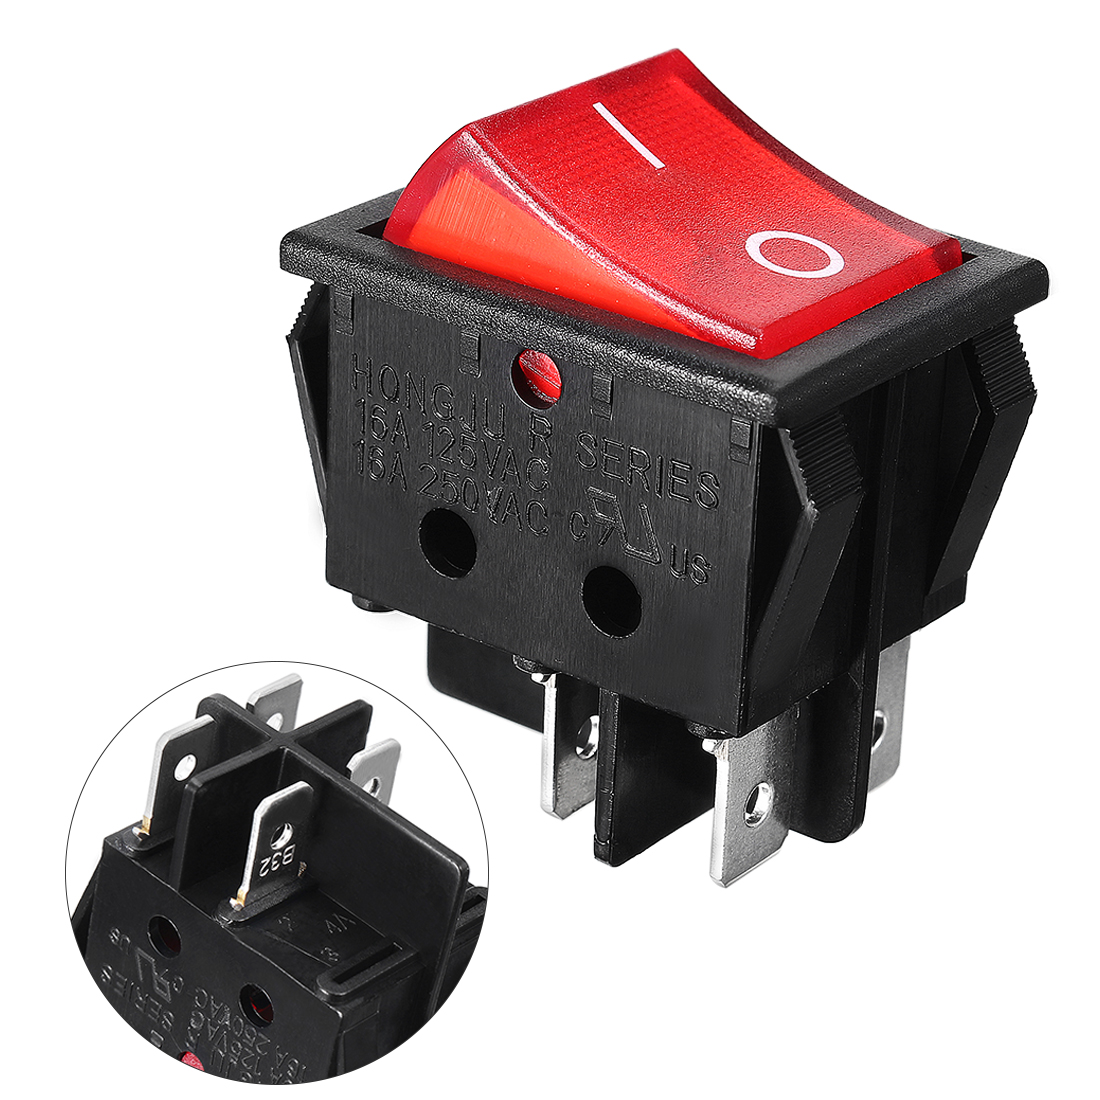 AC 110V-220V Red Lamp On/Off Snap-In Panel Mount SPST Latching Rocker Switch